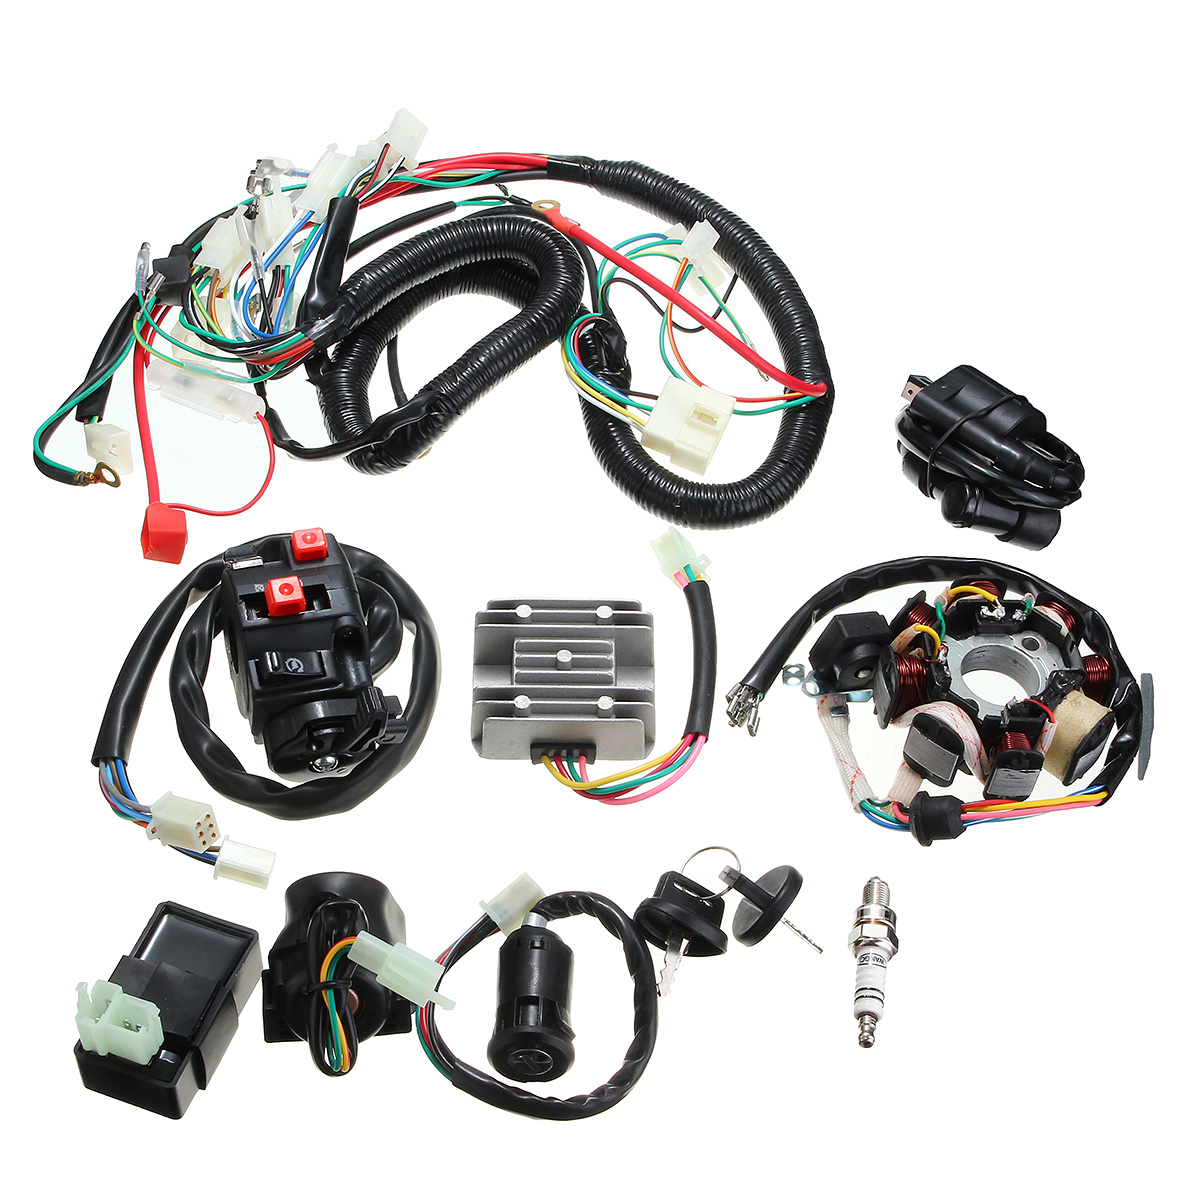 hight resolution of 125cc 150cc 200cc 250cc quad electric cdi coil wire harness stator assembly wiring set